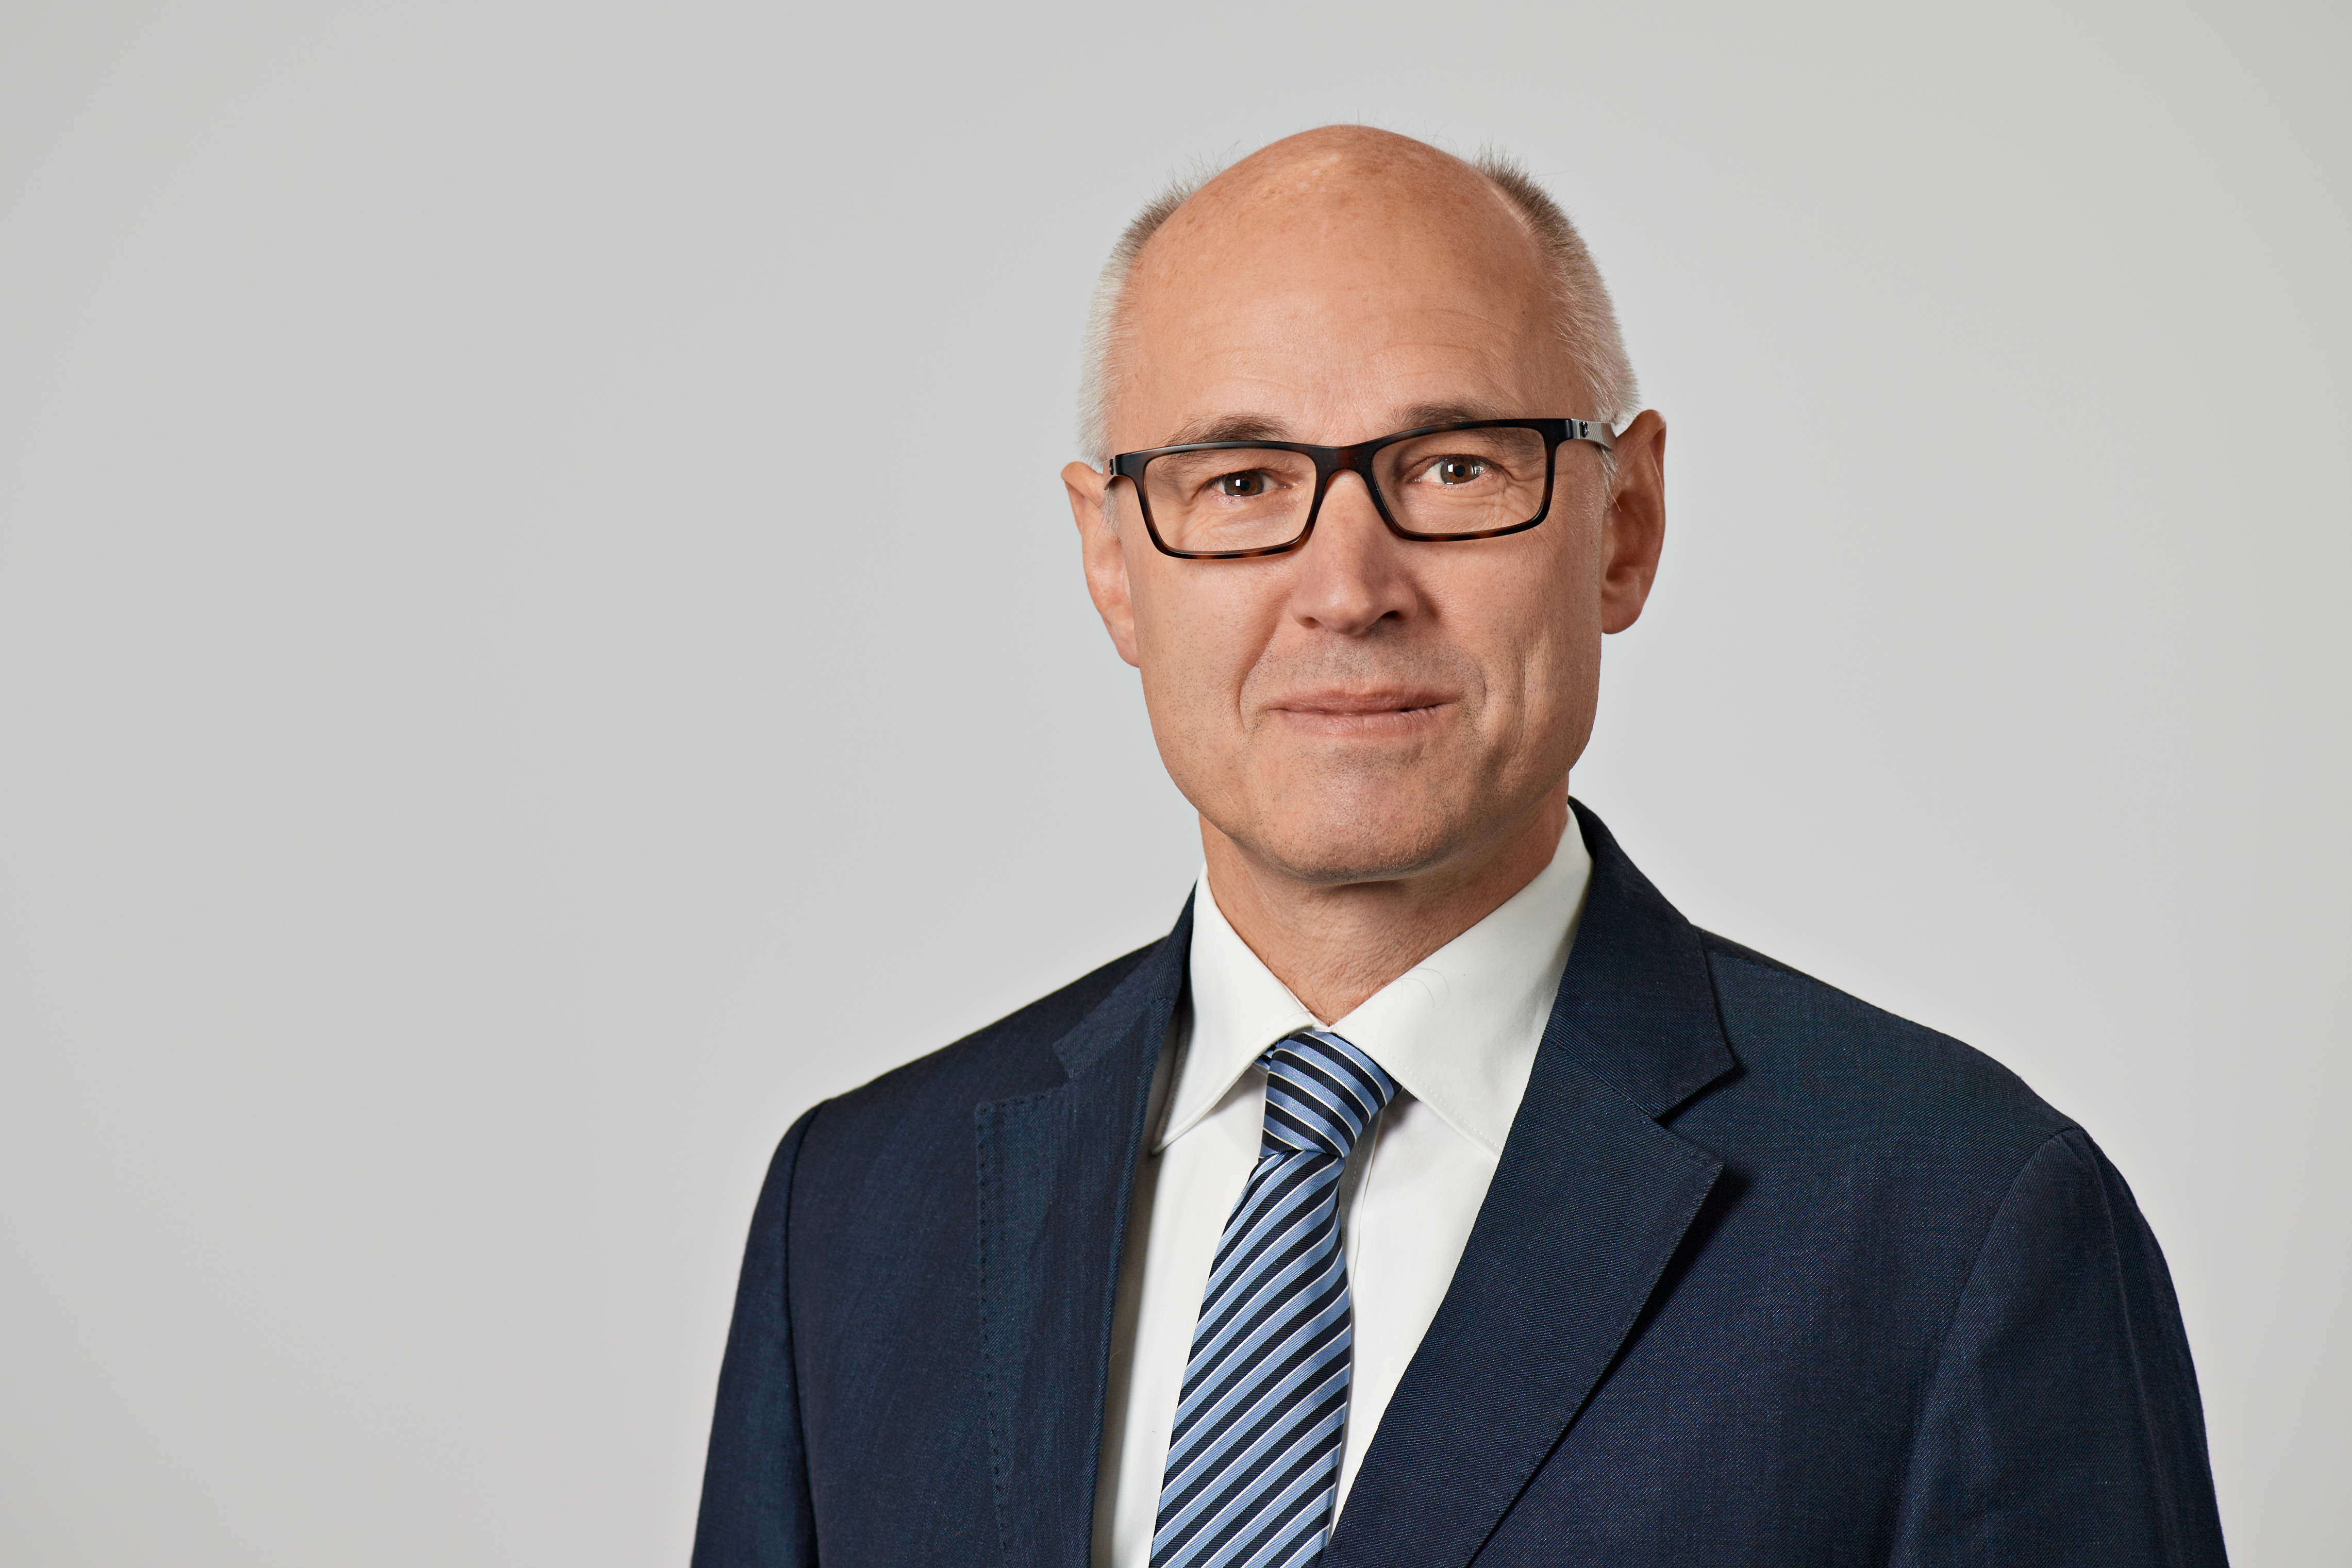 """Bernt Ritz, Consultant for Technology, Standardization and Clamping Tools in the VDMA Precision Tools Association: """"The standard sheet serves designers as a checklist which they can use to check which safety-related issues need to be taken into account at the design stage."""" Photo: VDMA"""